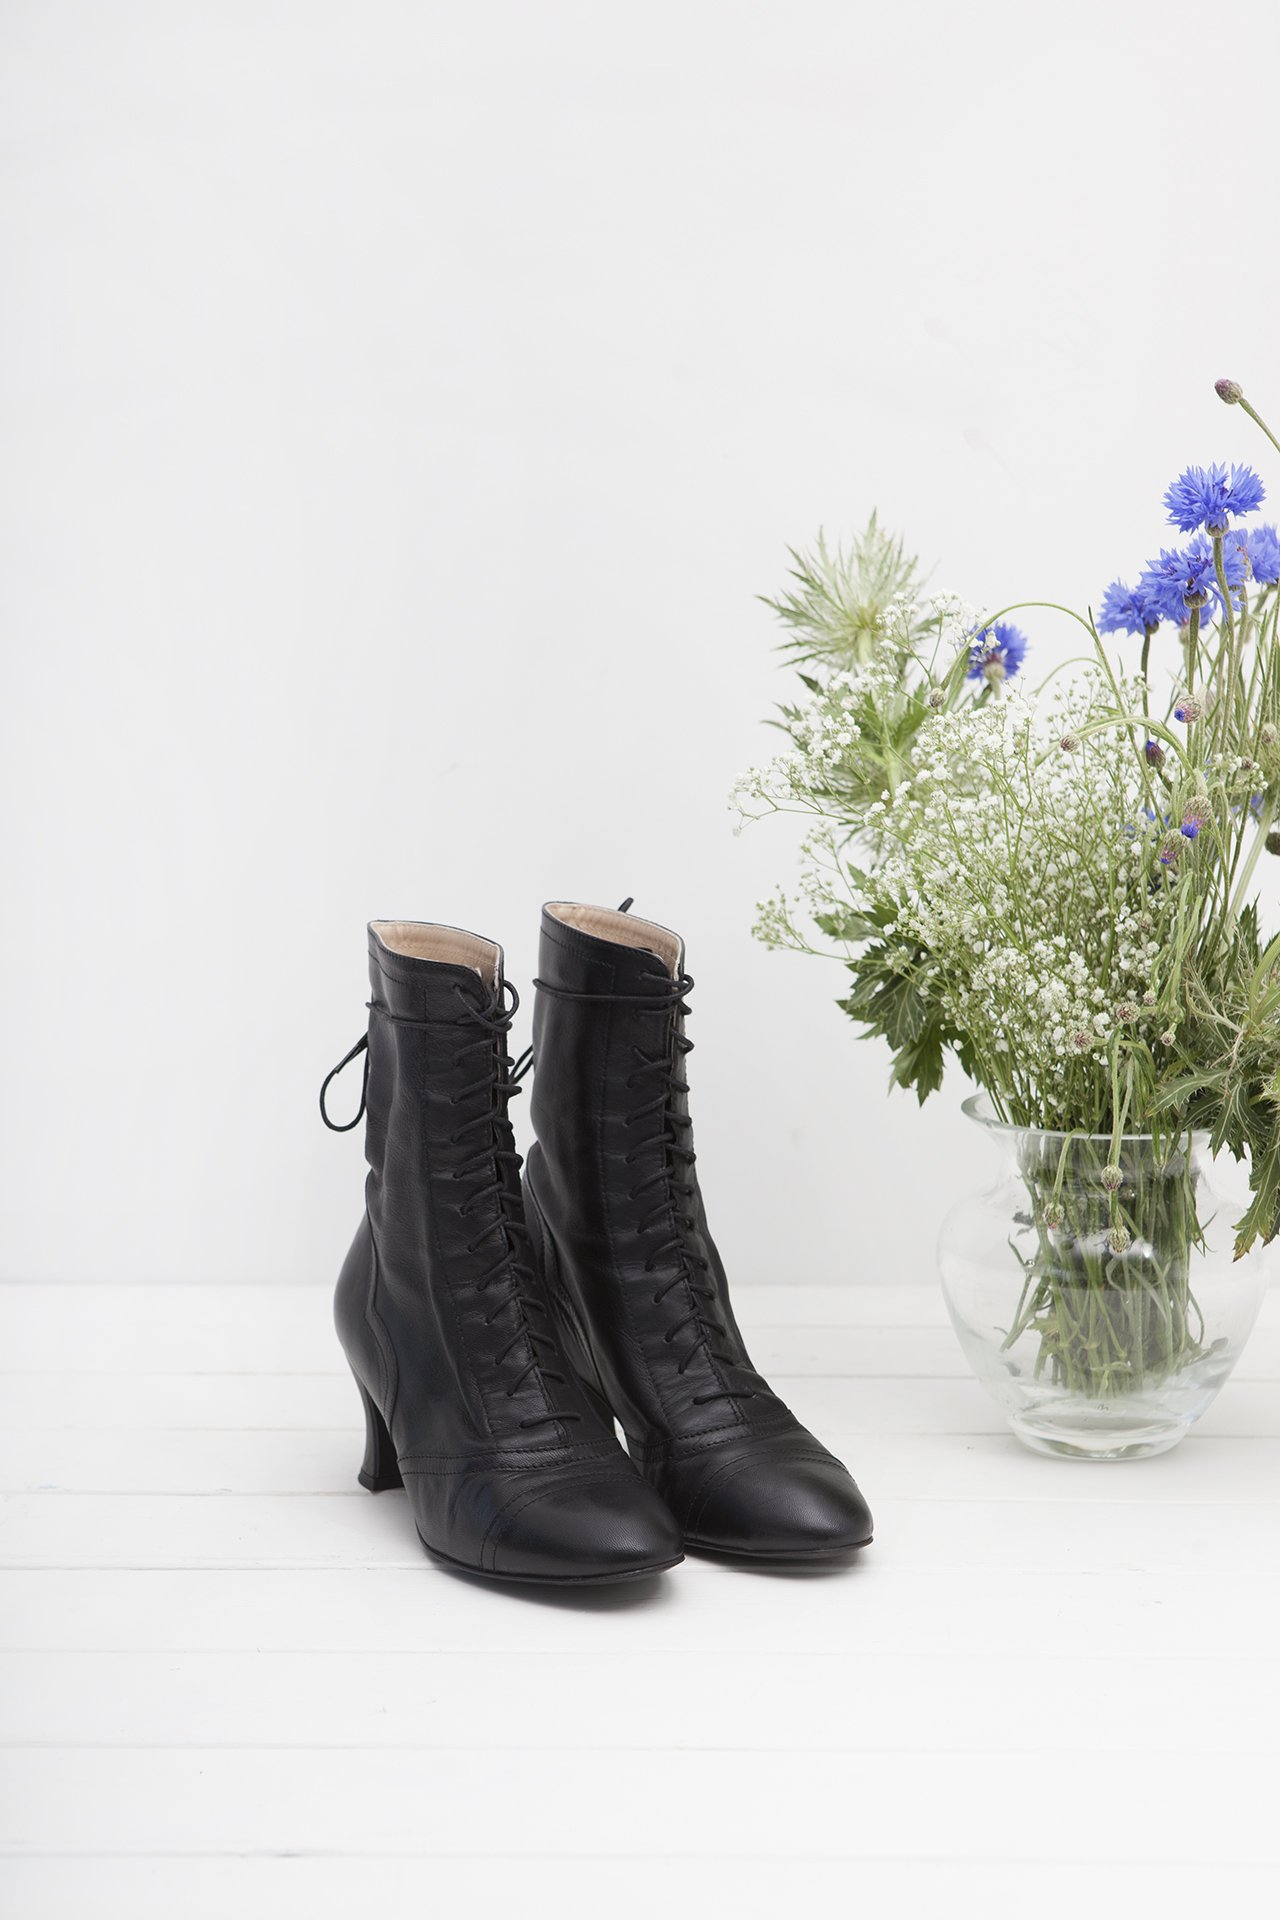 Vintage boot from Miss L Fire